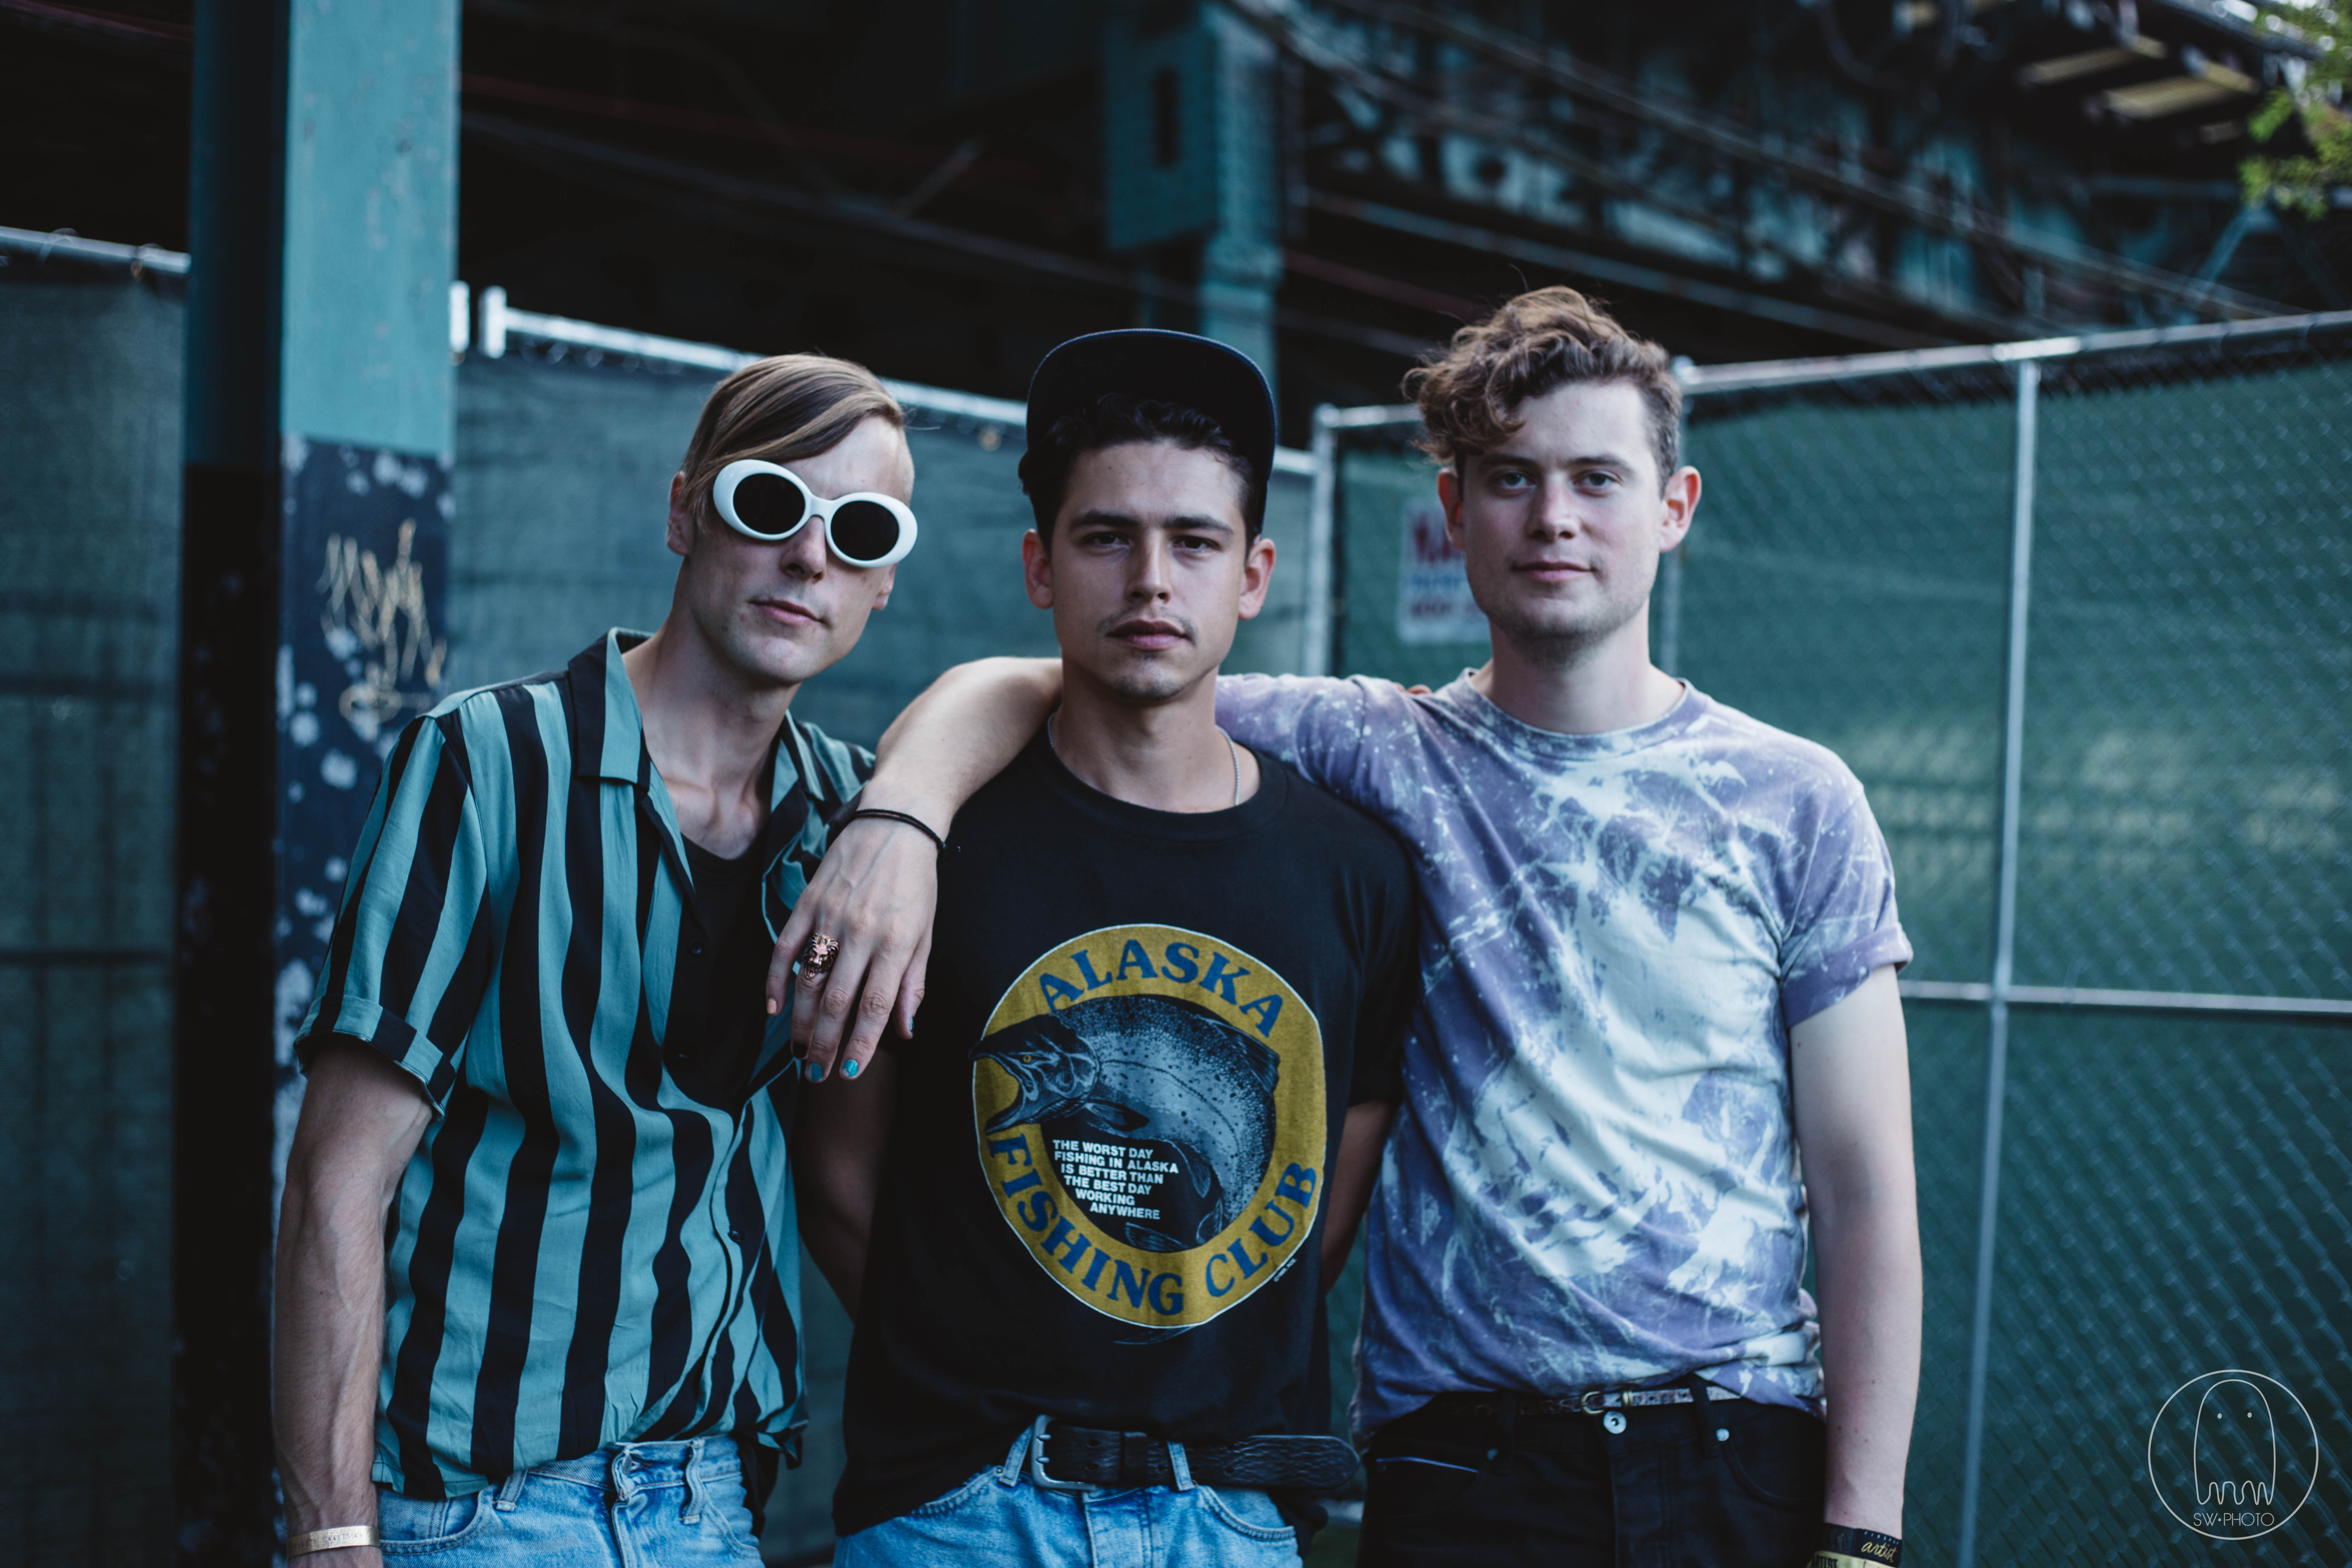 The Meadows: DREAMERS Talk Transcendence, Touring, and Experiences